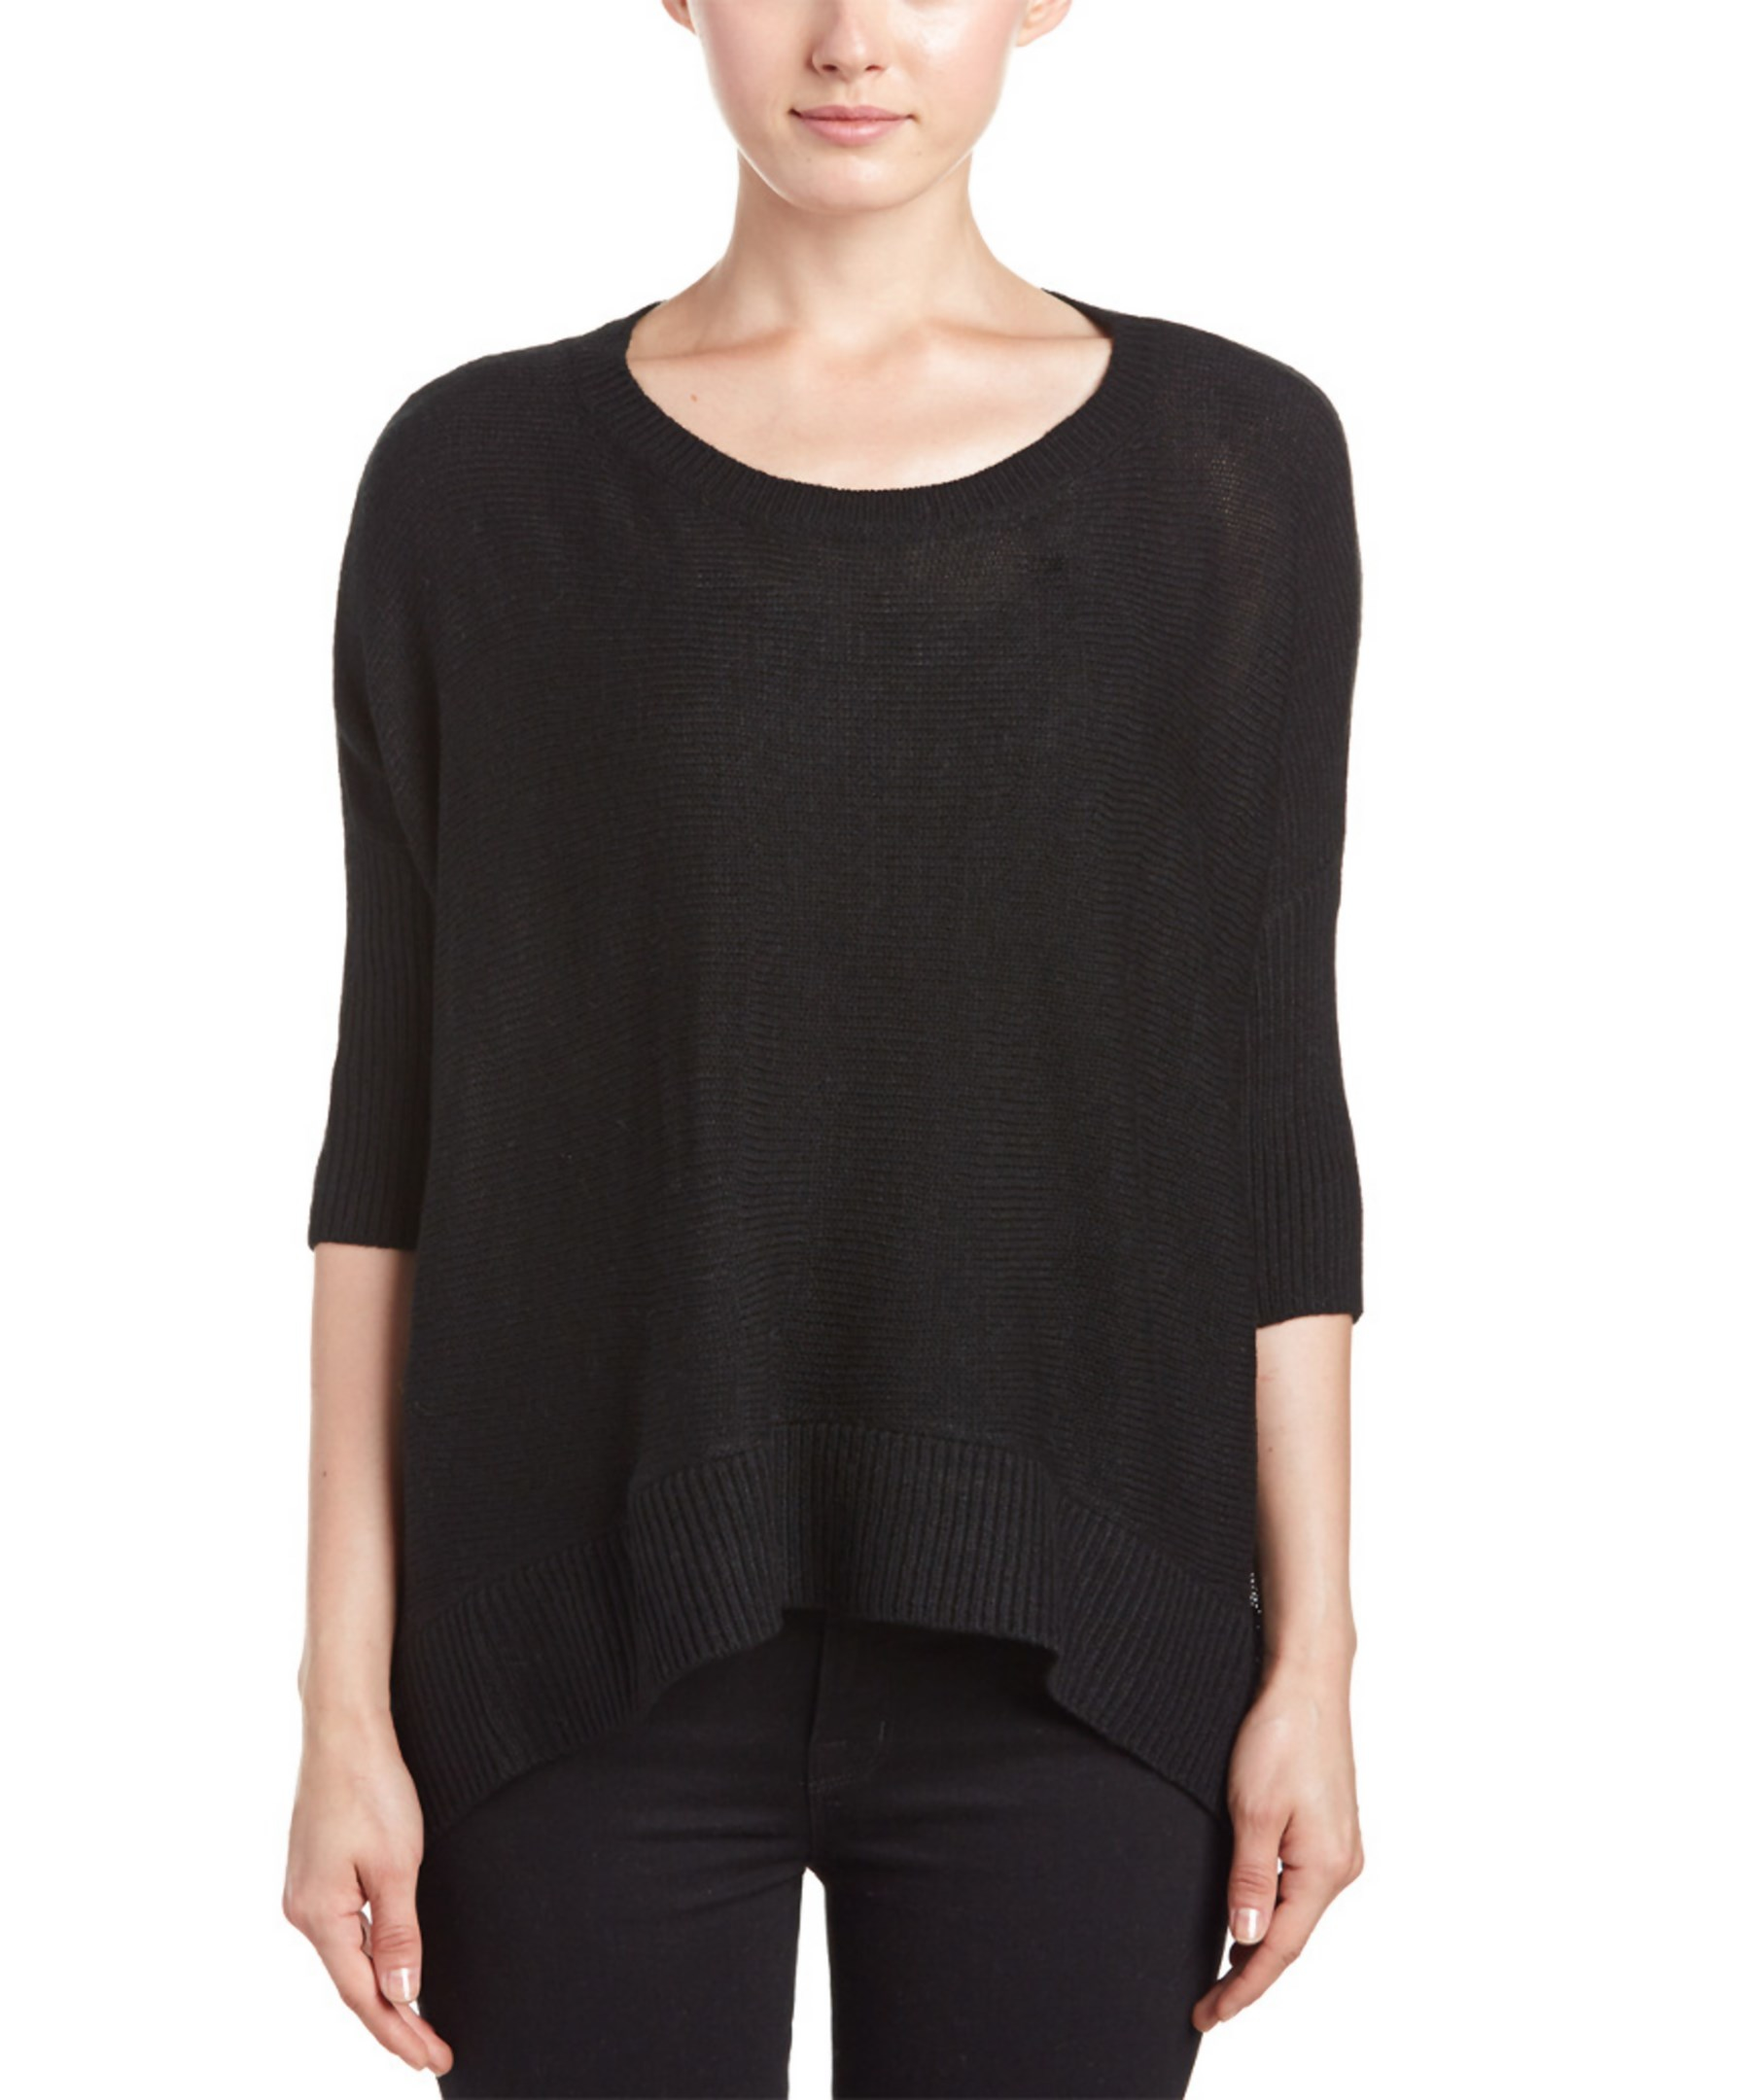 Lulus Exclusive! Get comfy-cute with the Lulus Greyson Black Long Dolman Sleeve Henley Top! Soft stretchy knit forms a perfectly relaxed bodice (with side notches), a wide V-neckline, a half button placket, and long dolman sleeves.4/5(2).